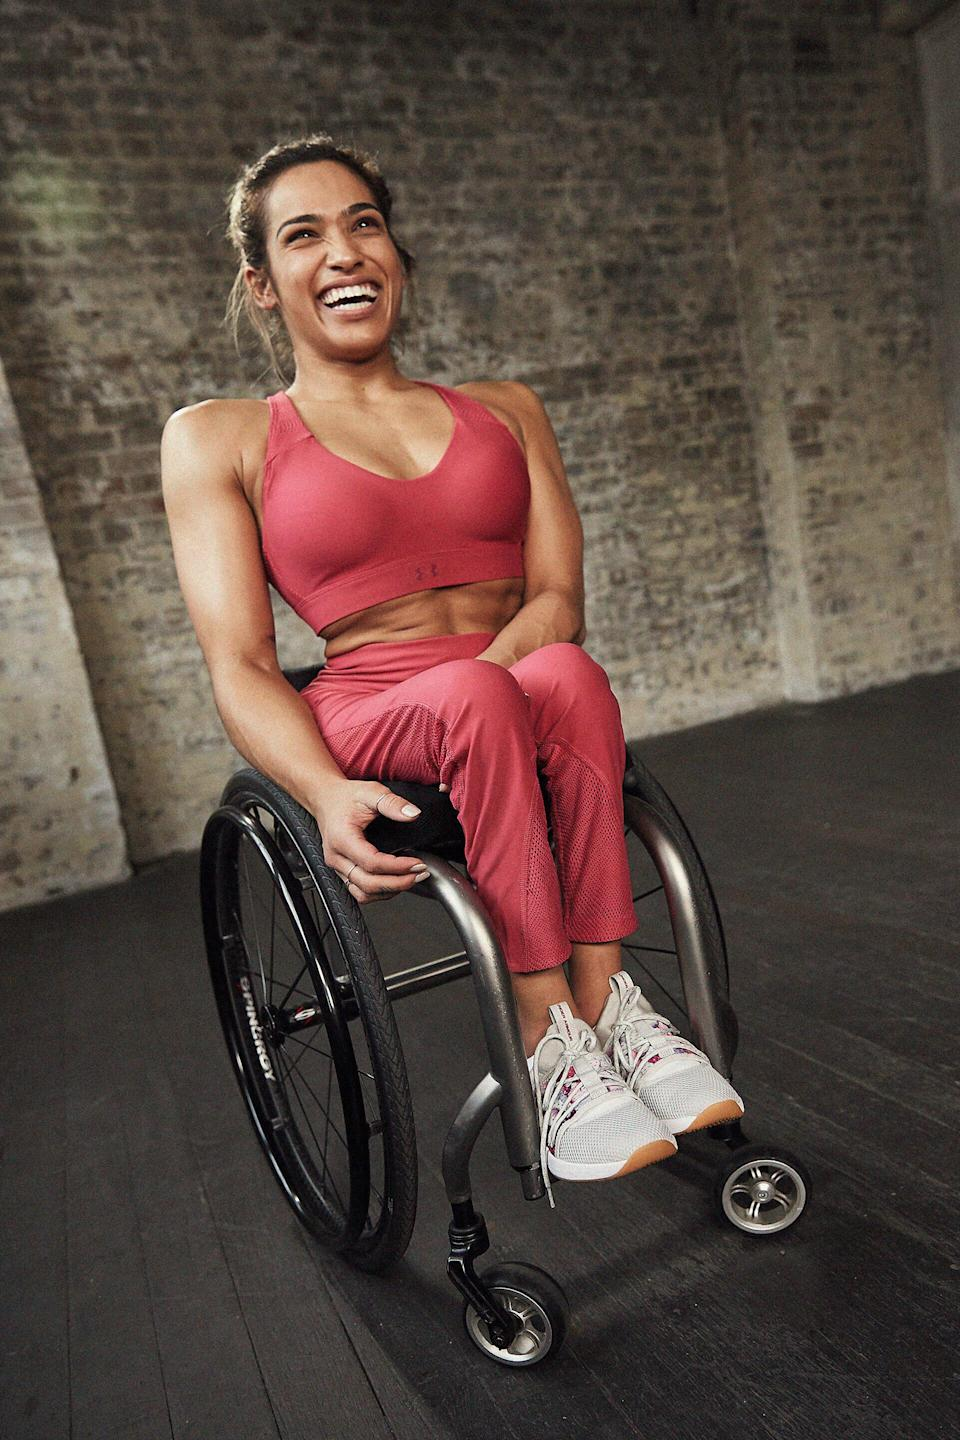 Madison is currently part of Under Armour's Together We Will campaign. Photo: Under Armour/ Ace Photography